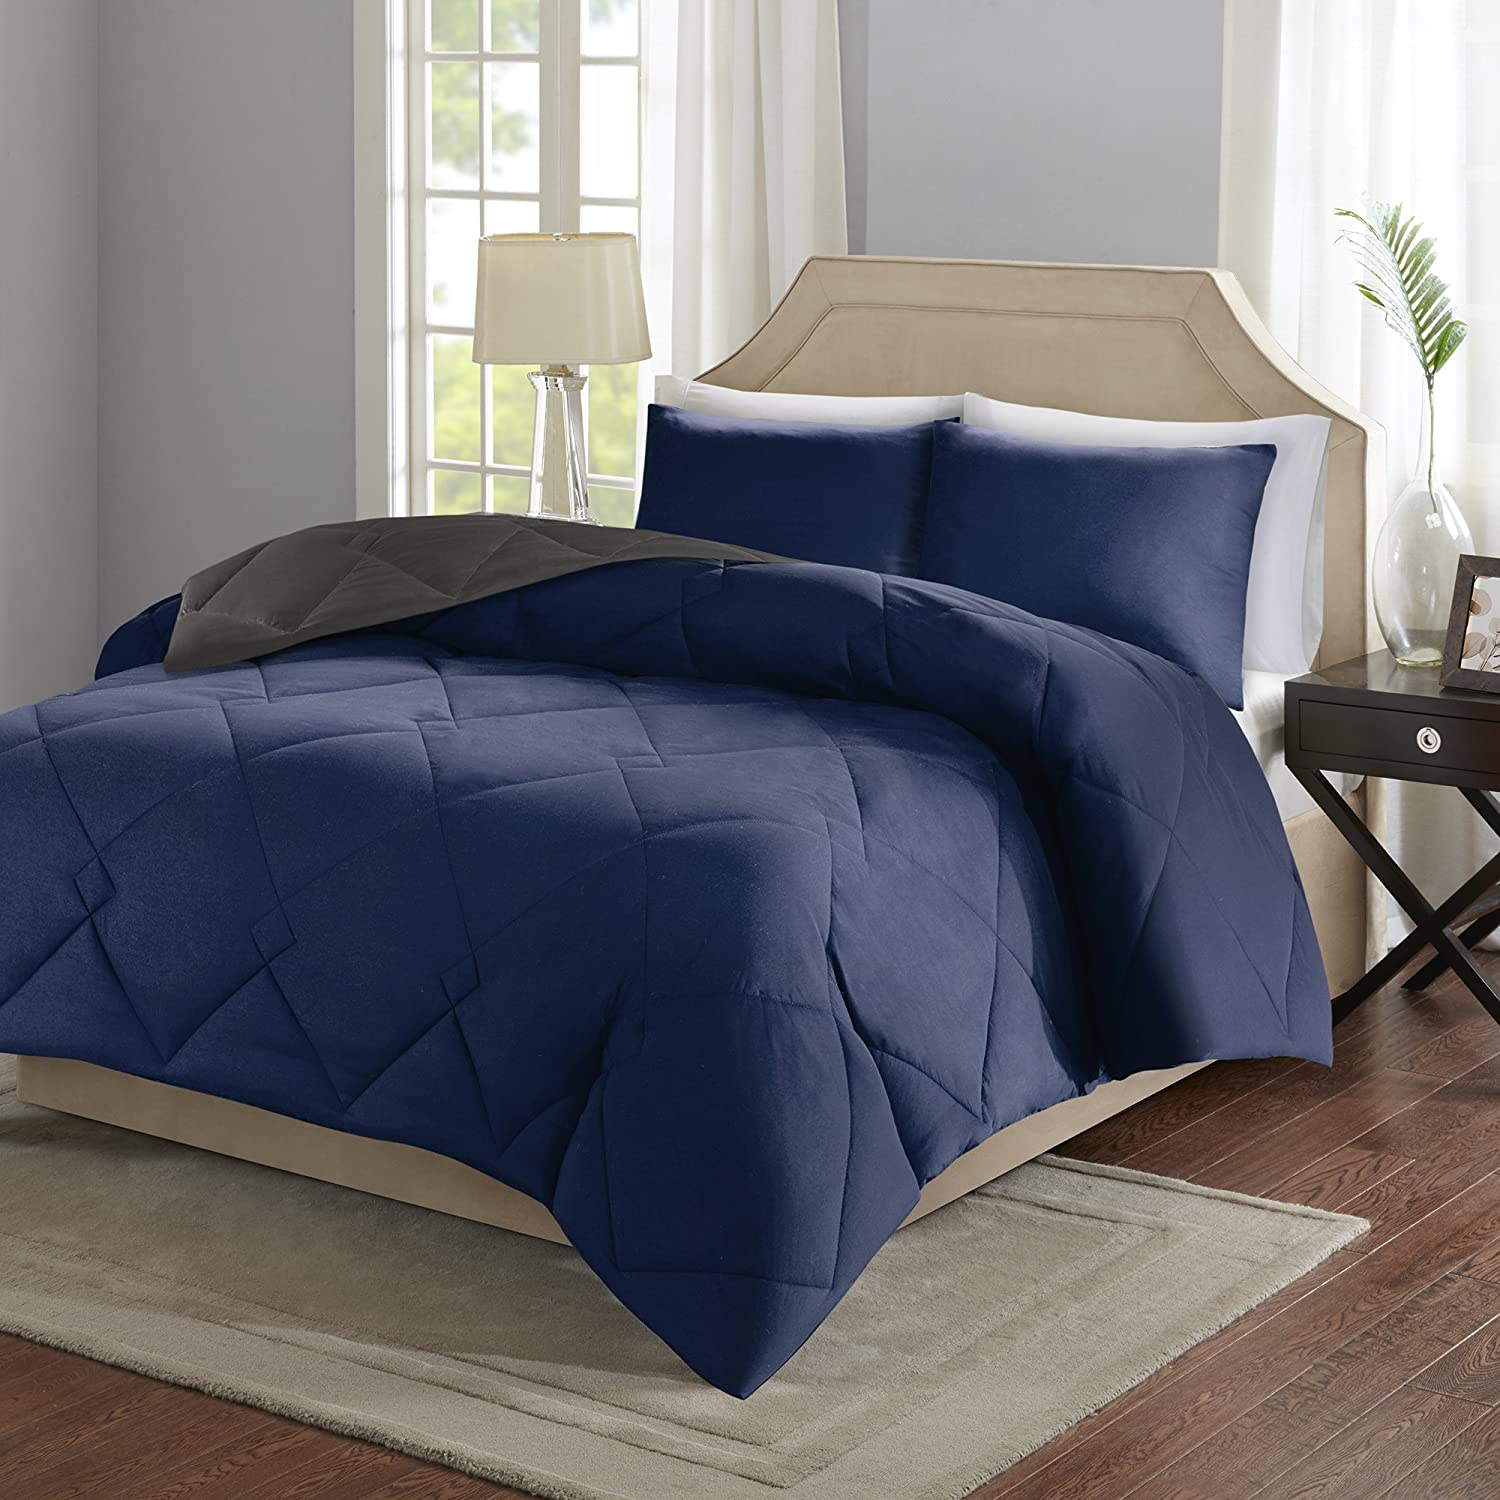 Comfort Spaces – Vixie Reversible Down Alternative Comforter Mini Set - 3 Piece – Navy and Charcoal – Stitched Geometrical Diamond Pattern